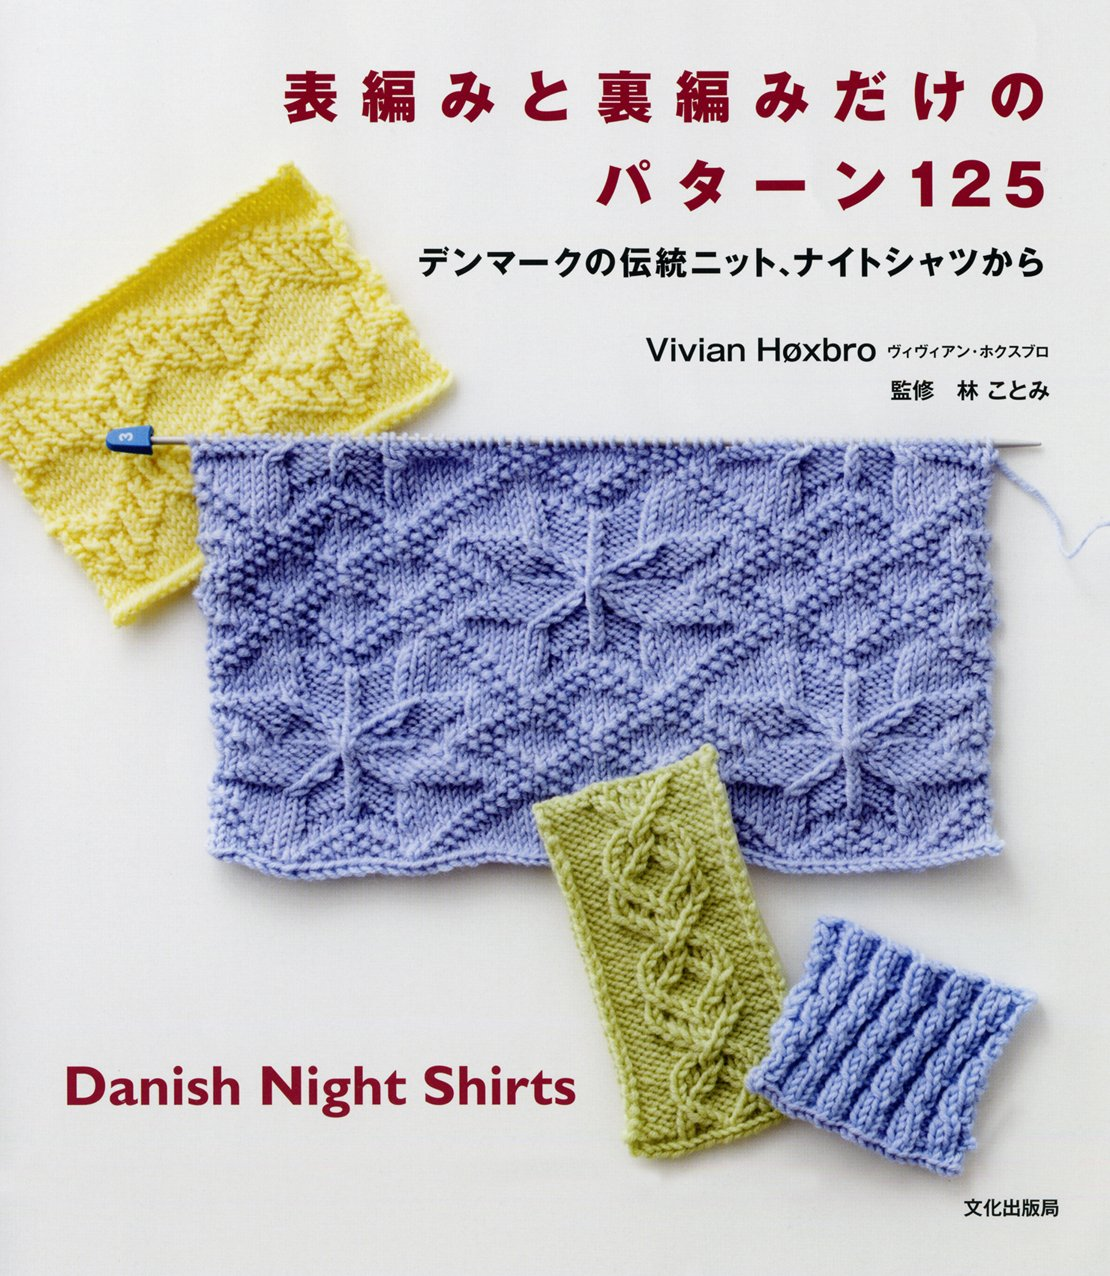 Danish night shirt knit tradition of 125 pattern only purl and knit stitch